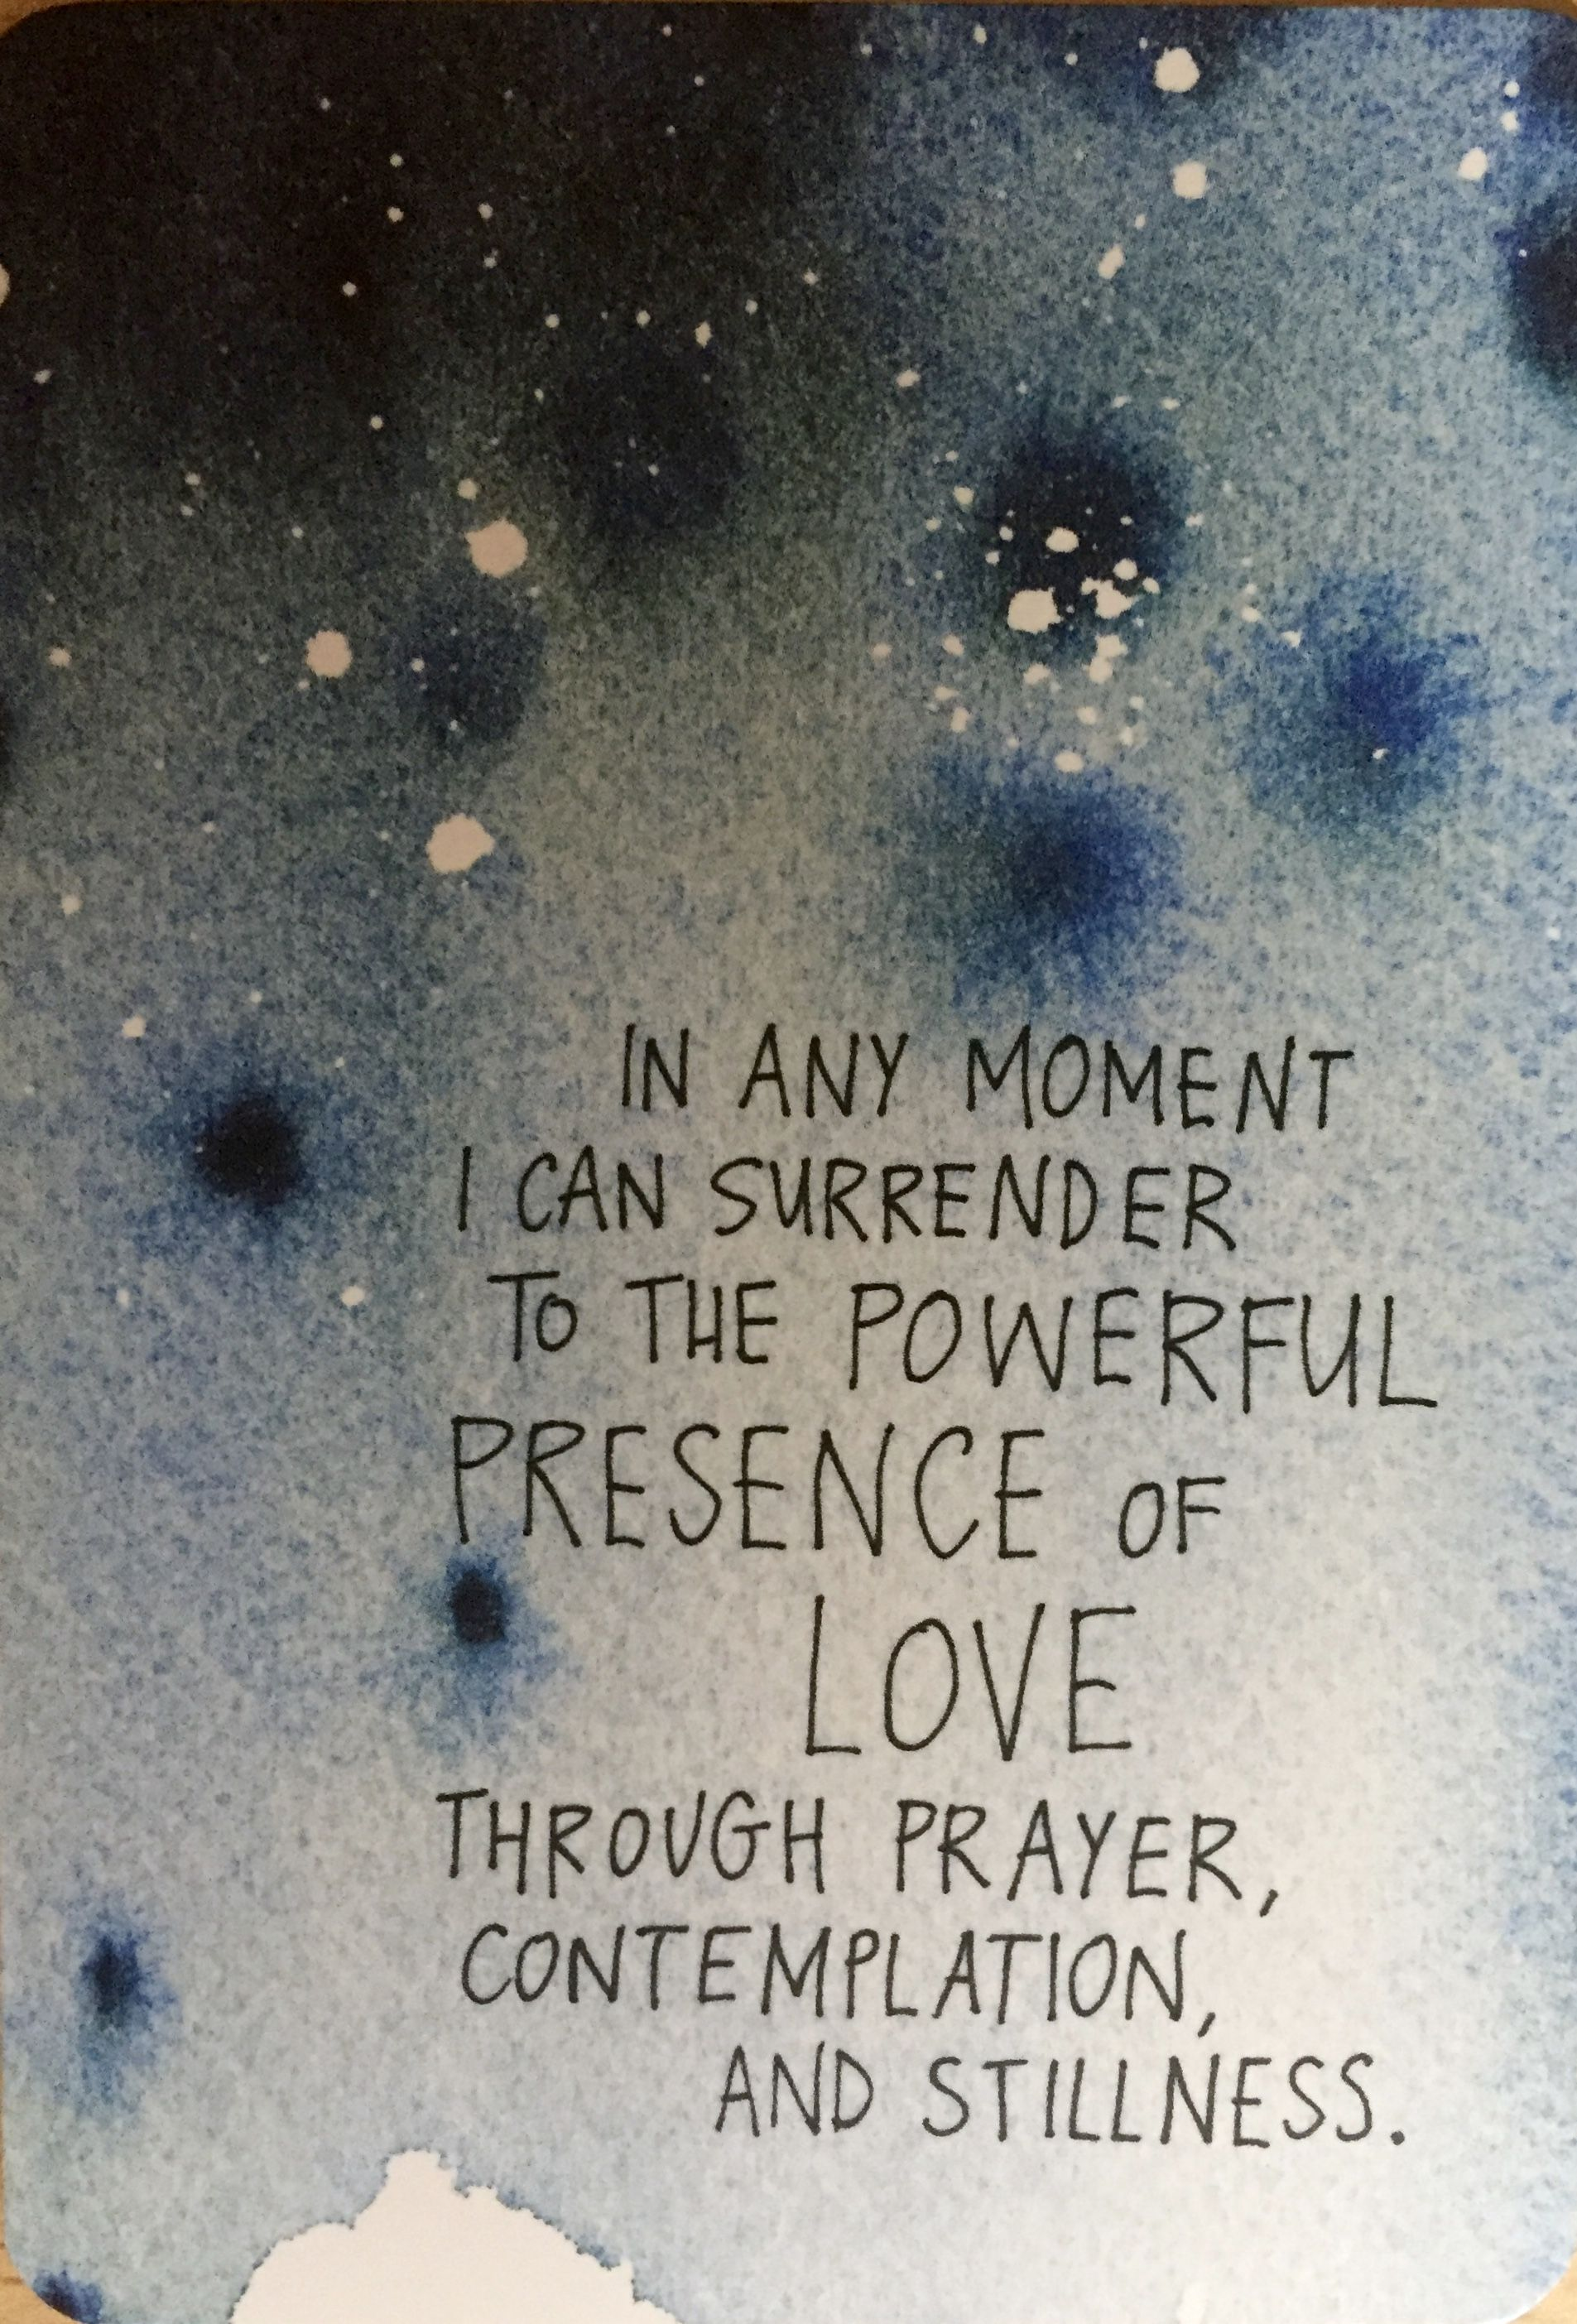 In Any Moment I Can Surrender To The Powerful Presence Of Love